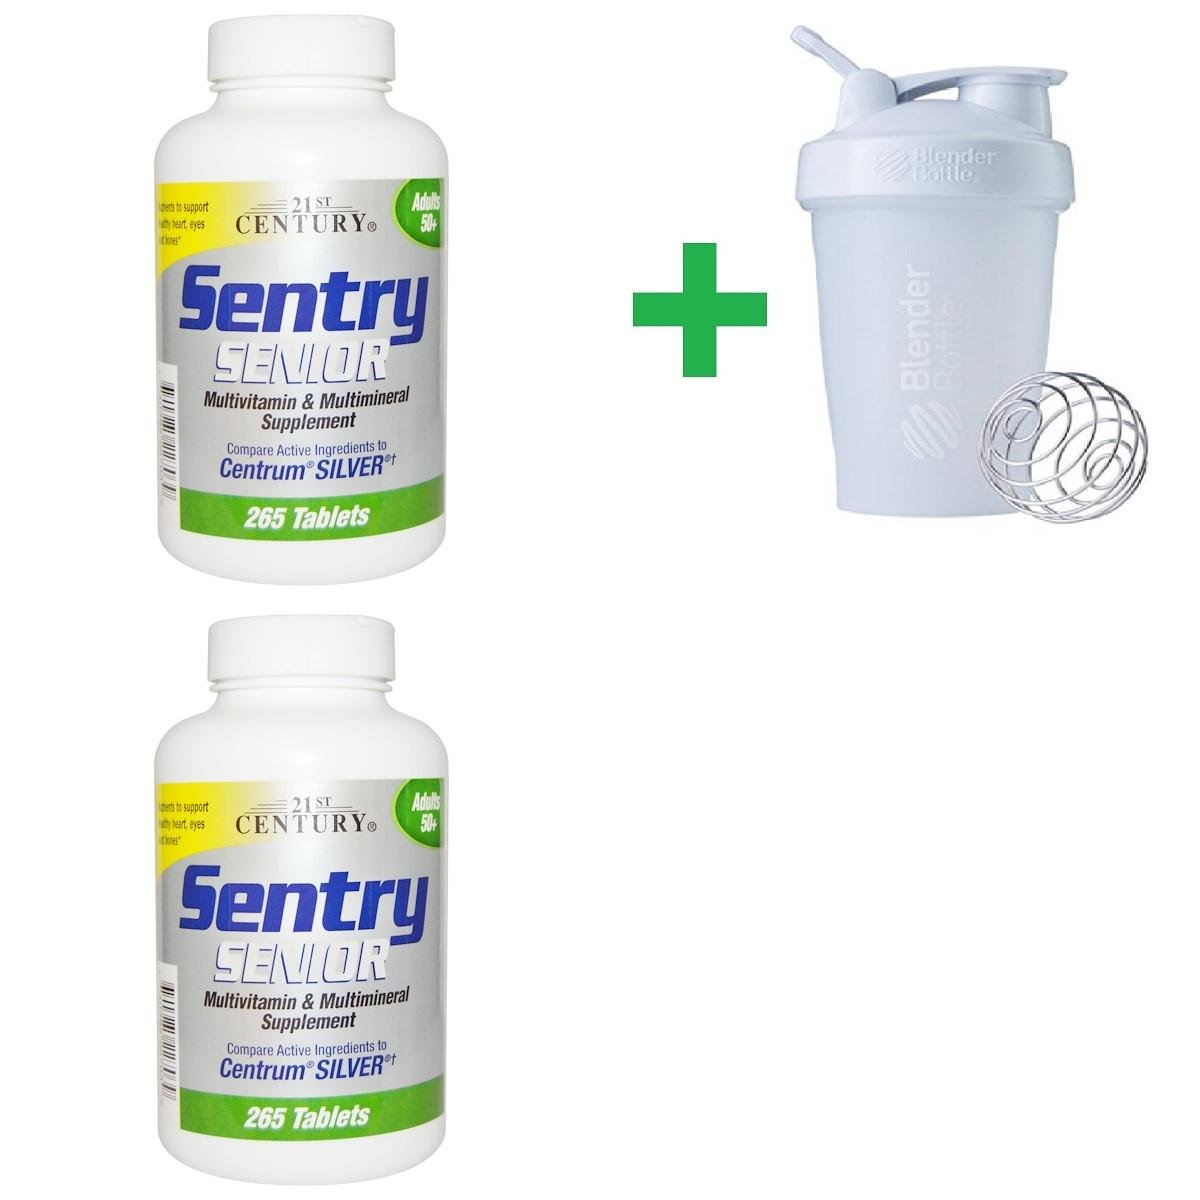 21st Century, Sentry Senior, Multivitamin & Mineral Supplement, Adults 50+, 265 Tablets (2 Packs) + Assorted Sundesa, BlenderBottle, Classic With Loop, 20 oz